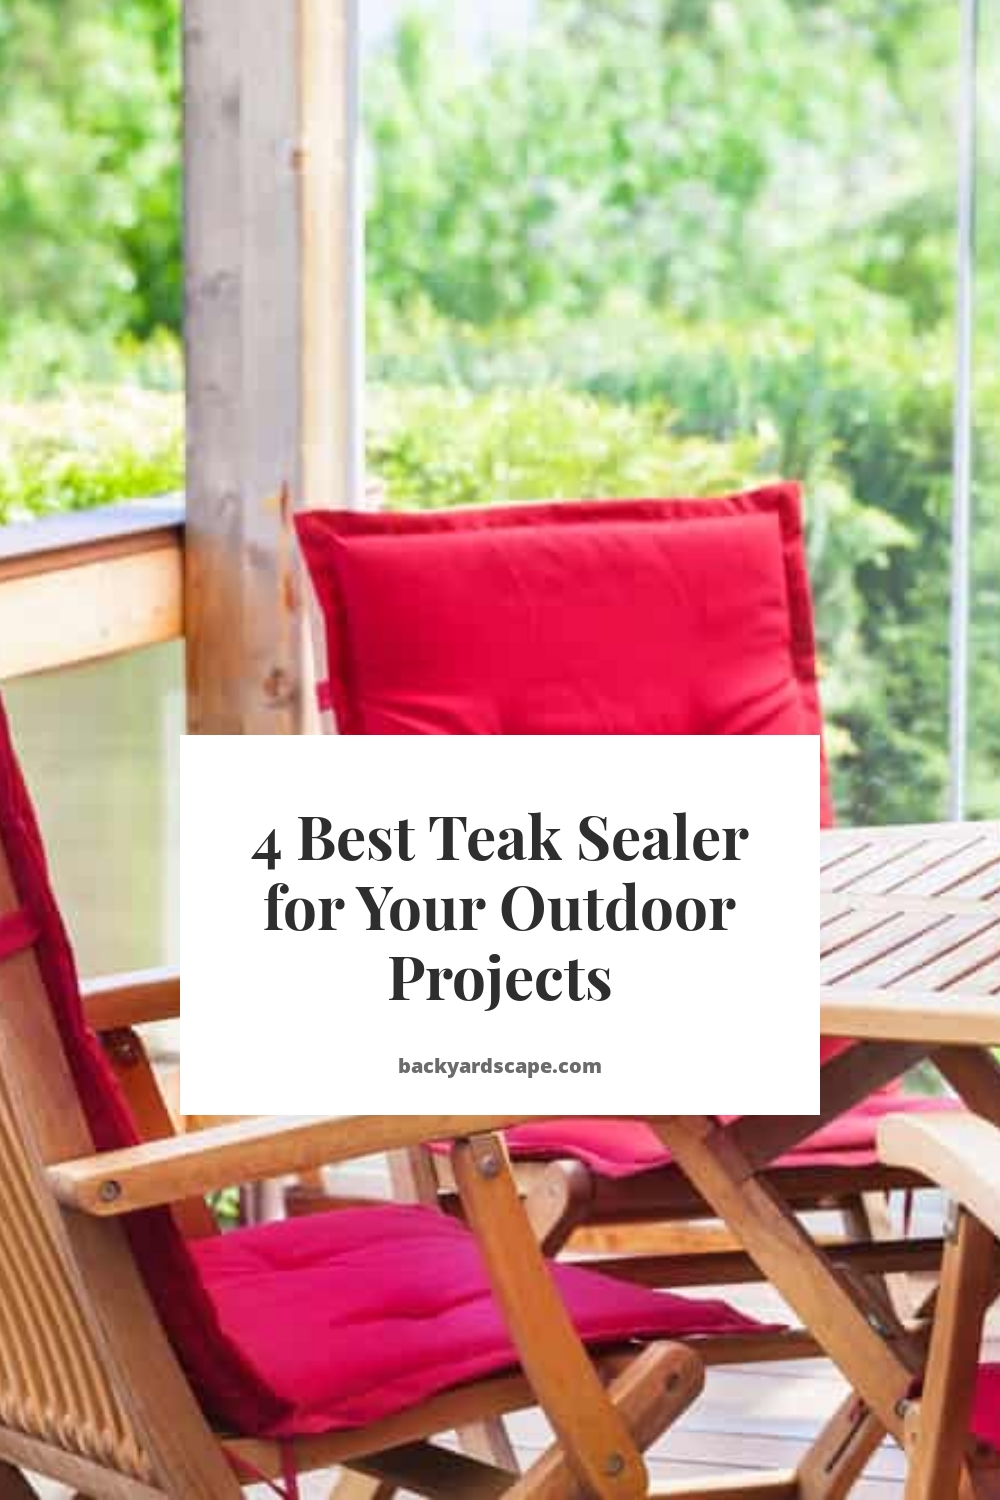 4 Best Teak Sealer for Your Outdoor Projects